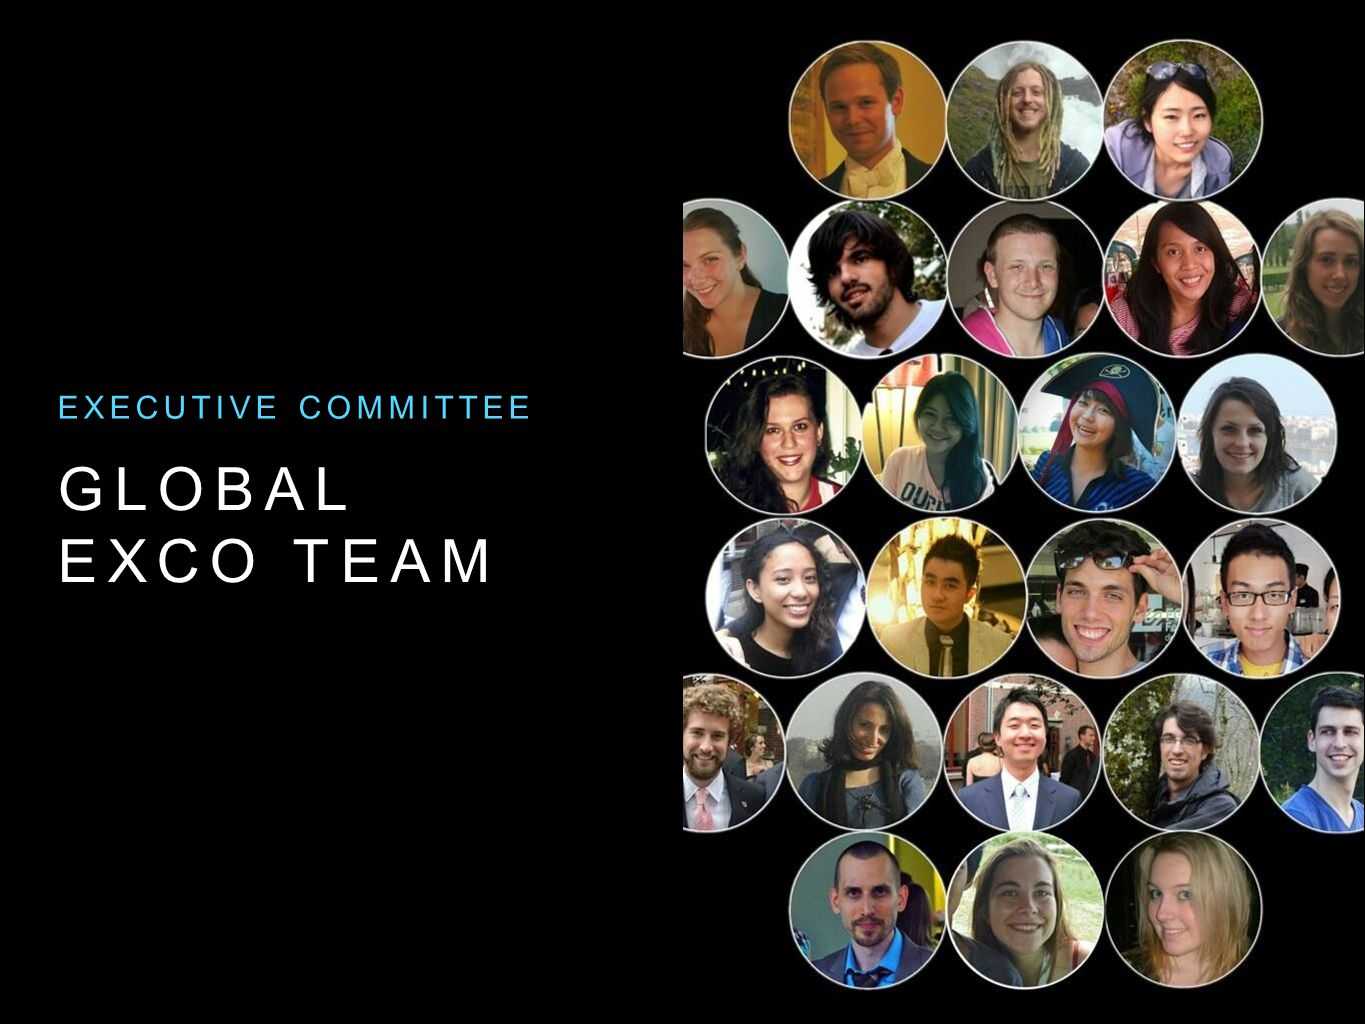 GLOBAL EXCO TEAM EXECUTIVE COMMITTEE